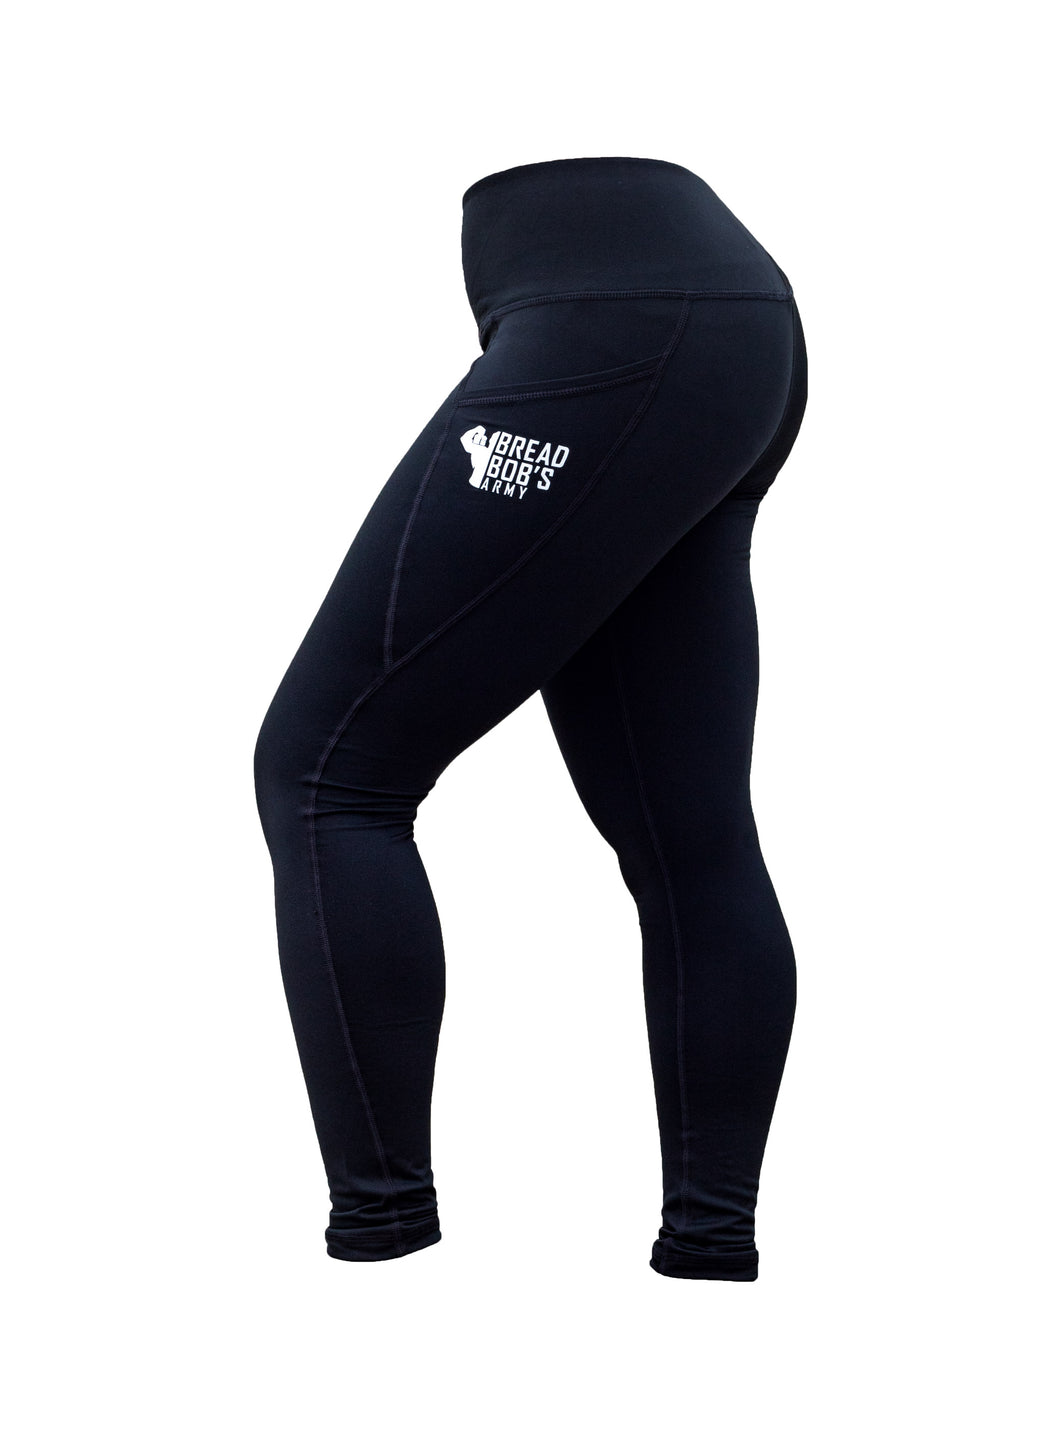 Black Leggings (With Pockets)